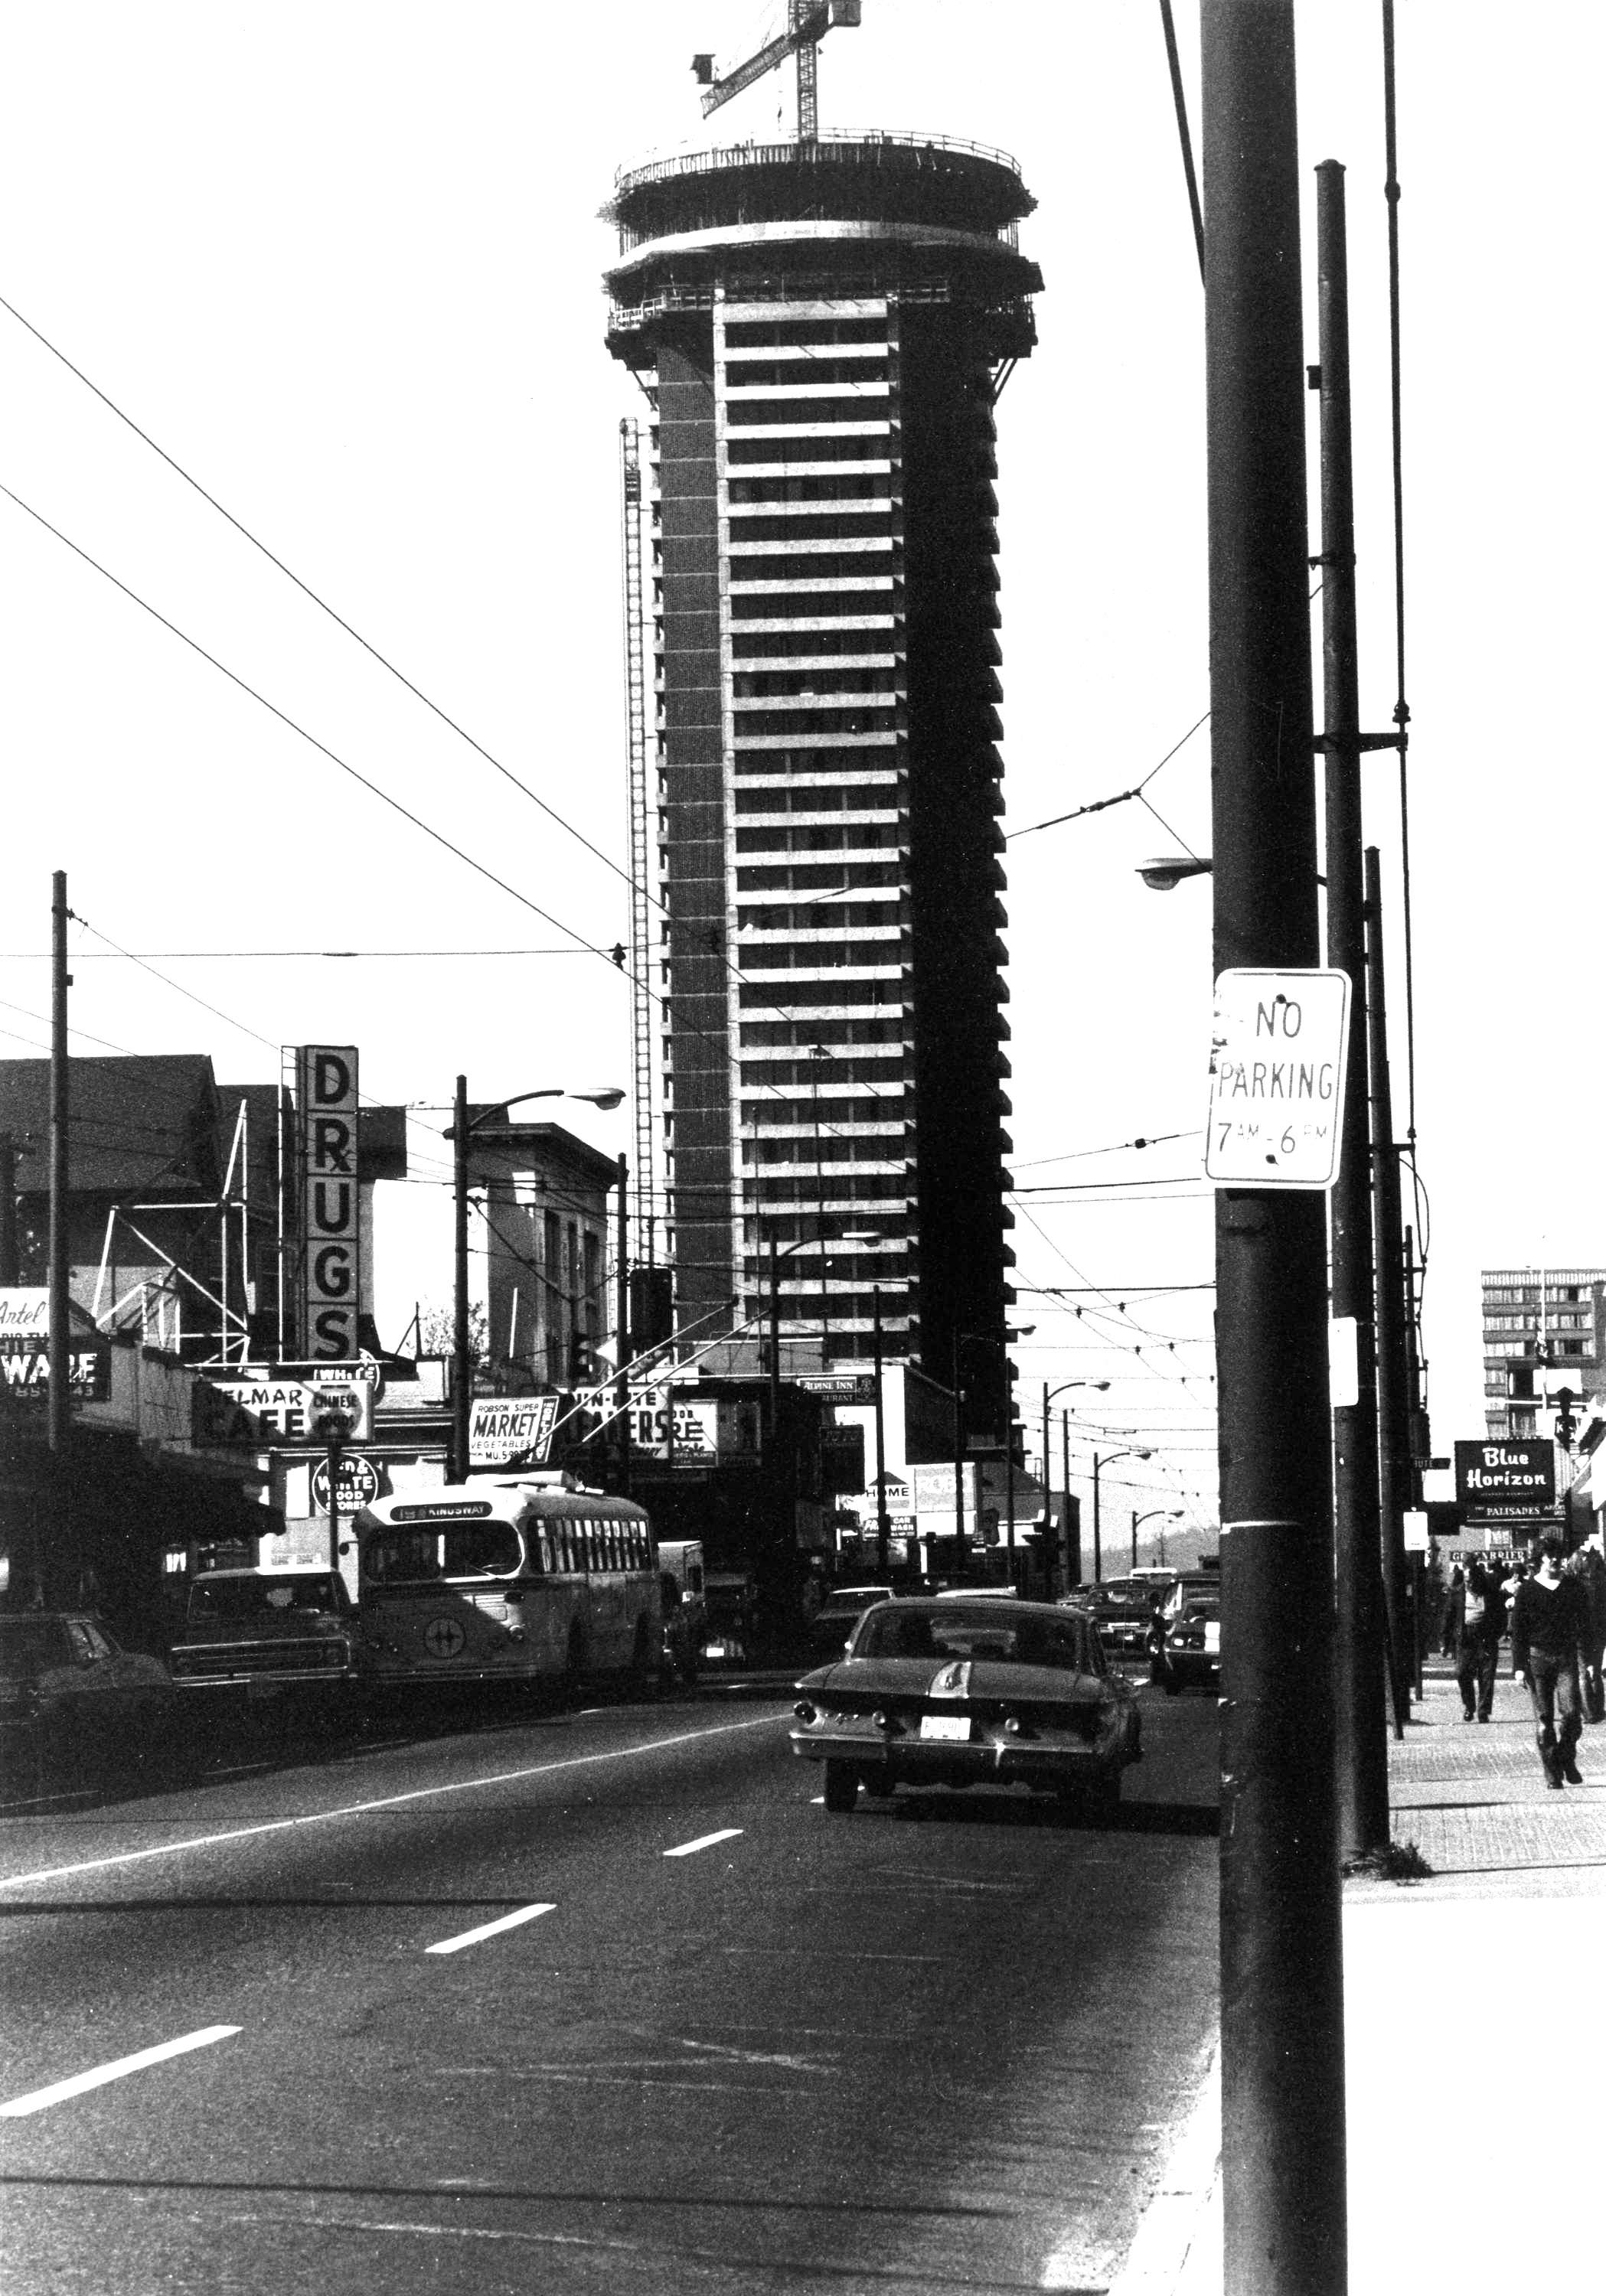 The Landmark Hotel just before it was completed in 1973